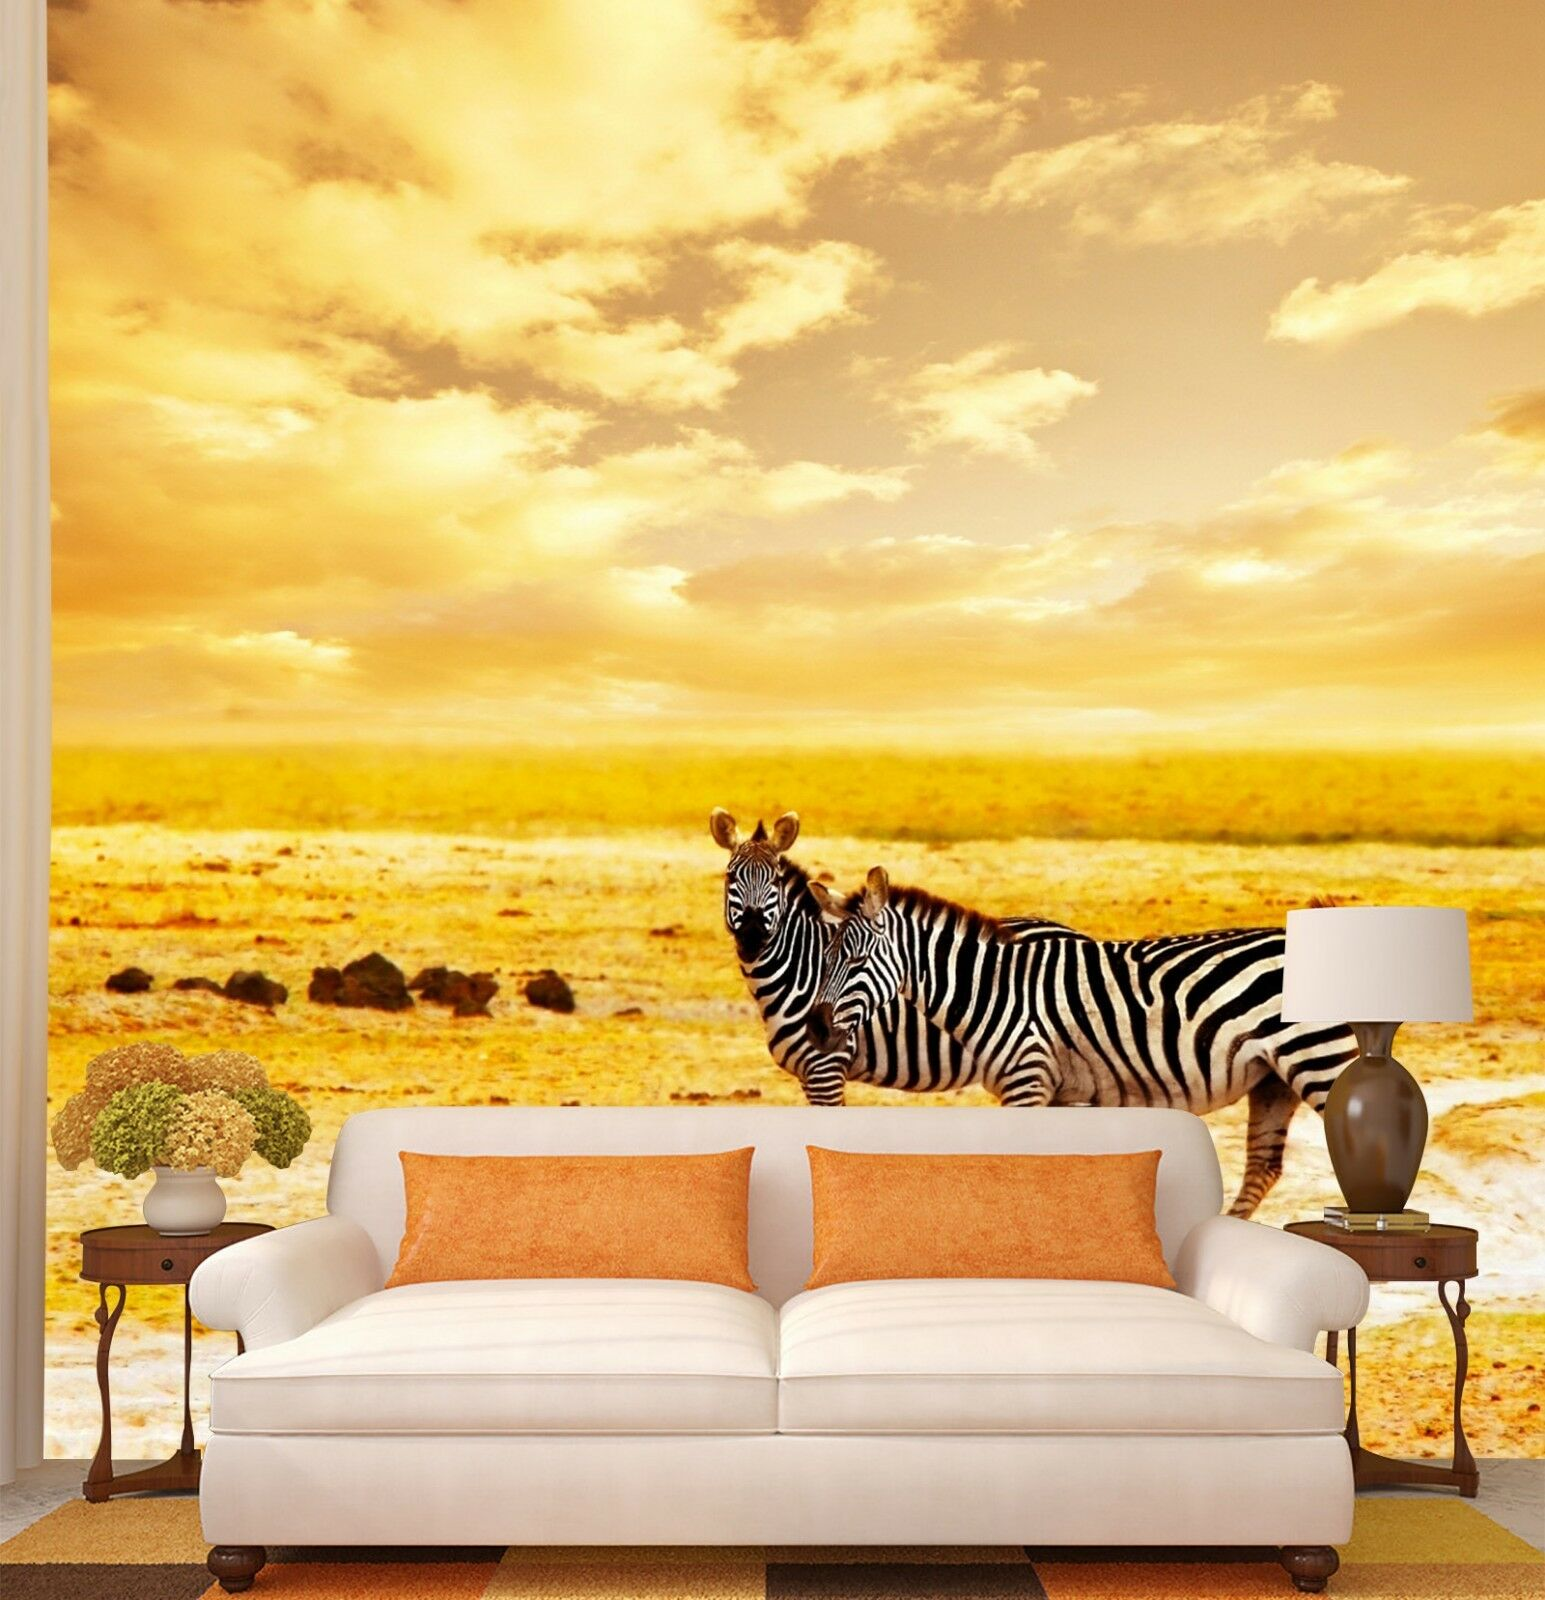 3D Weiß Coulds Zebra 12 Wall Paper wall Print Decal Wall Deco Indoor wall Mural